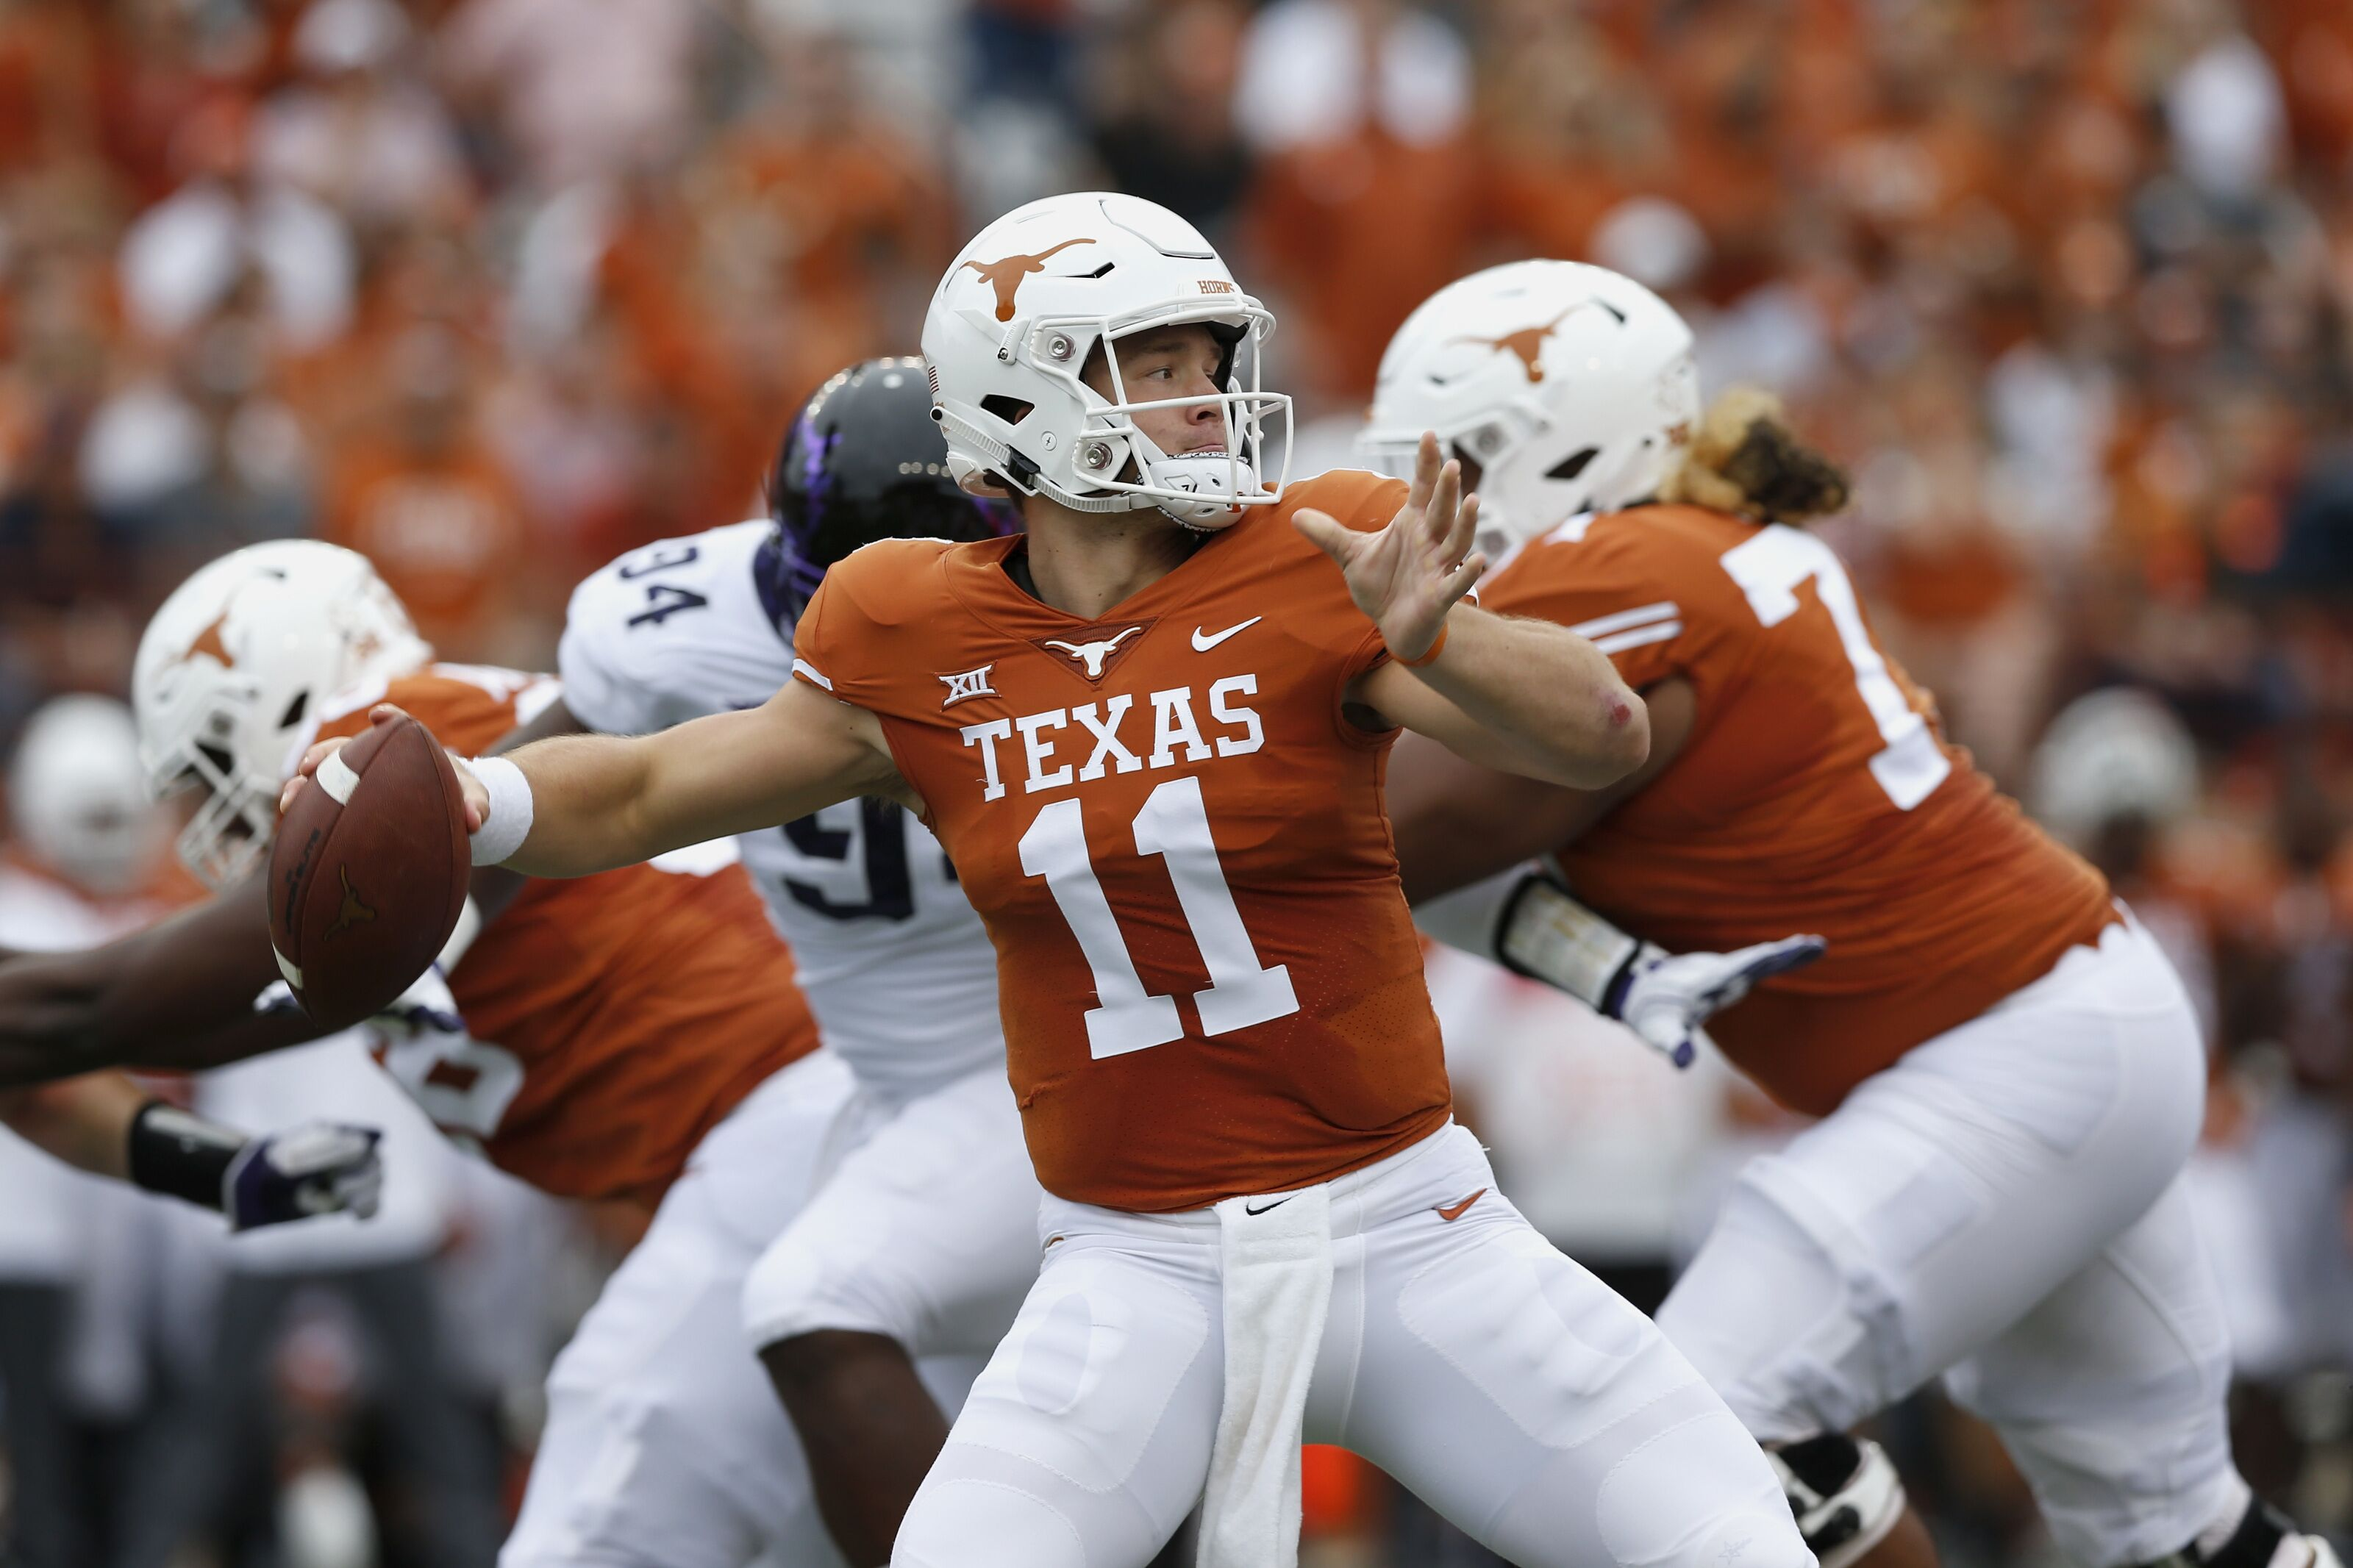 2019 Big 12 win totals, betting advice, predictions: Is Texas overrated or underrated?